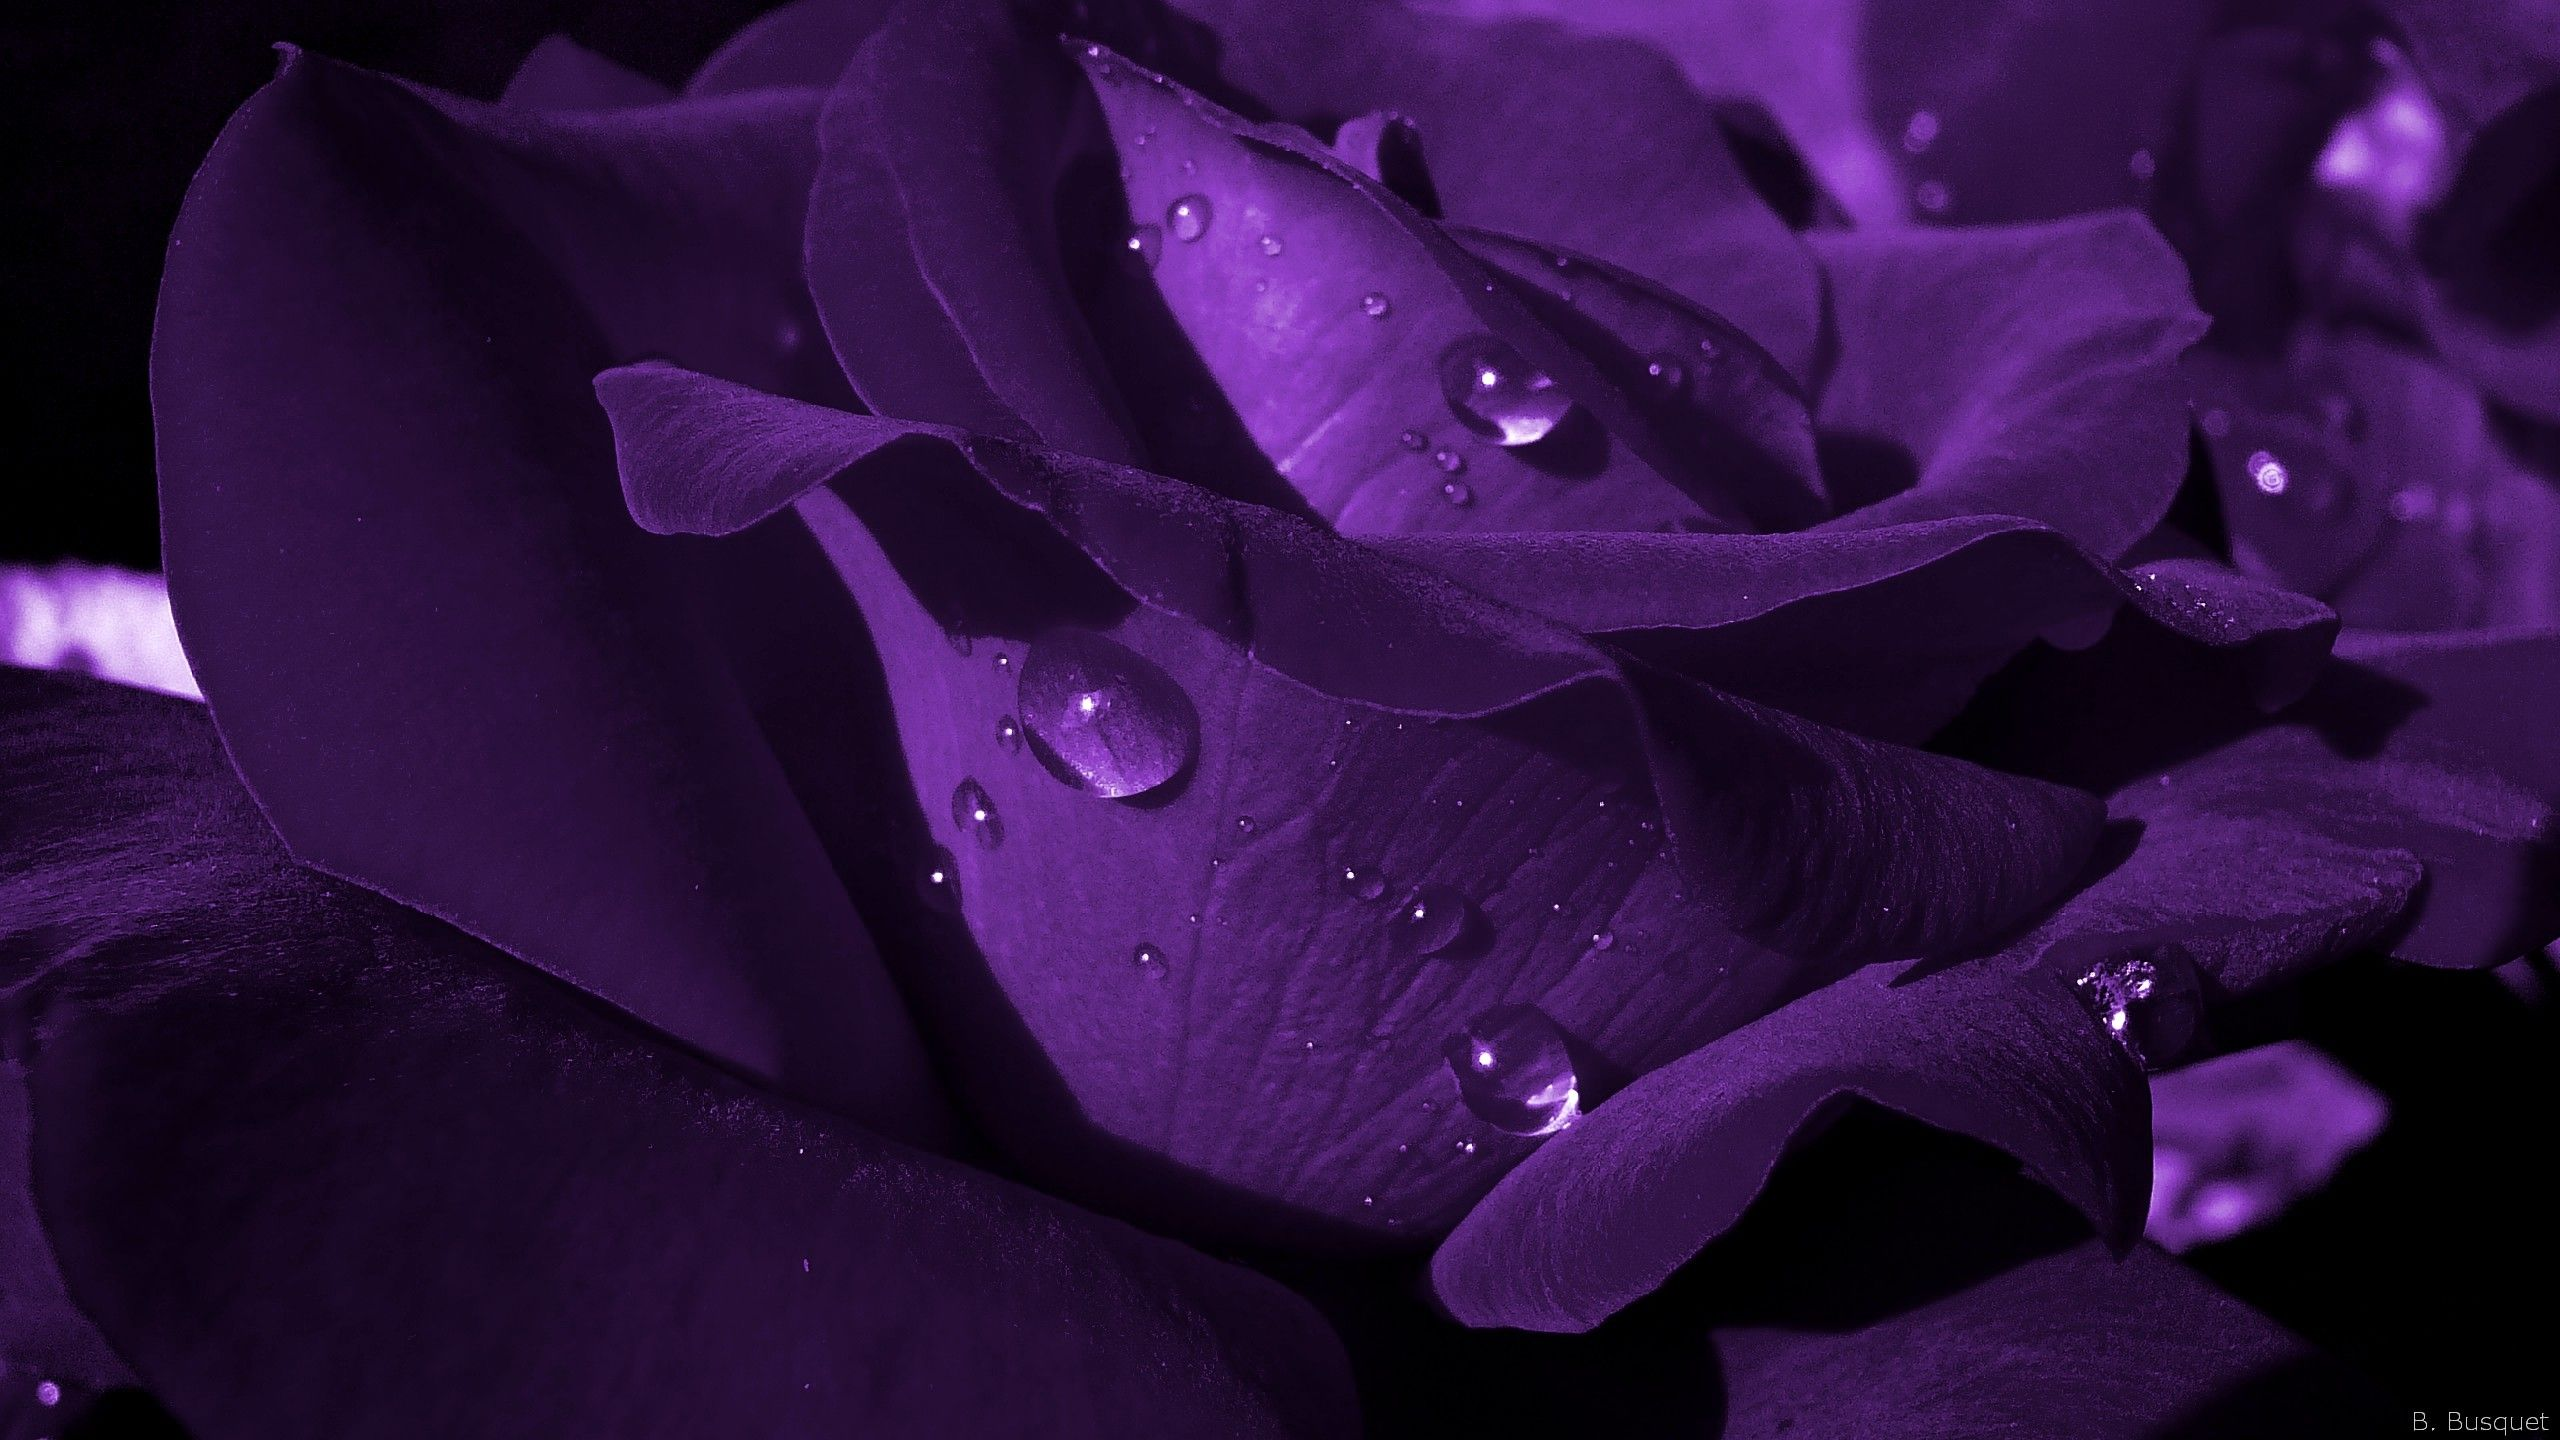 Purple And Black Rose Wallpapers Top Free Purple And Black Rose Backgrounds Wallpaperaccess